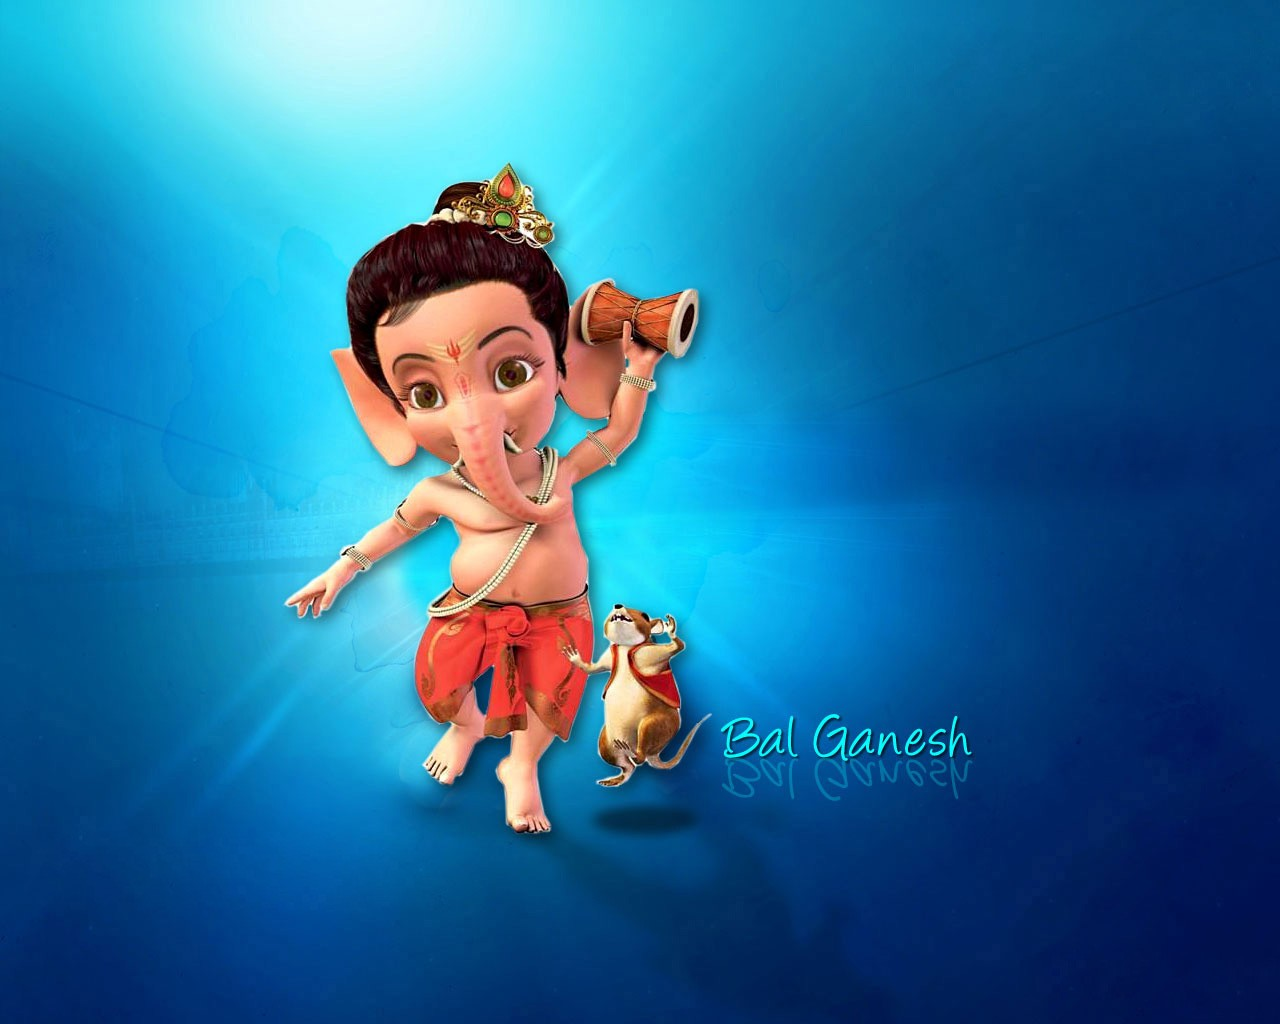 Best Collections Of Ganpati HD Images, Wallpapers, Pics